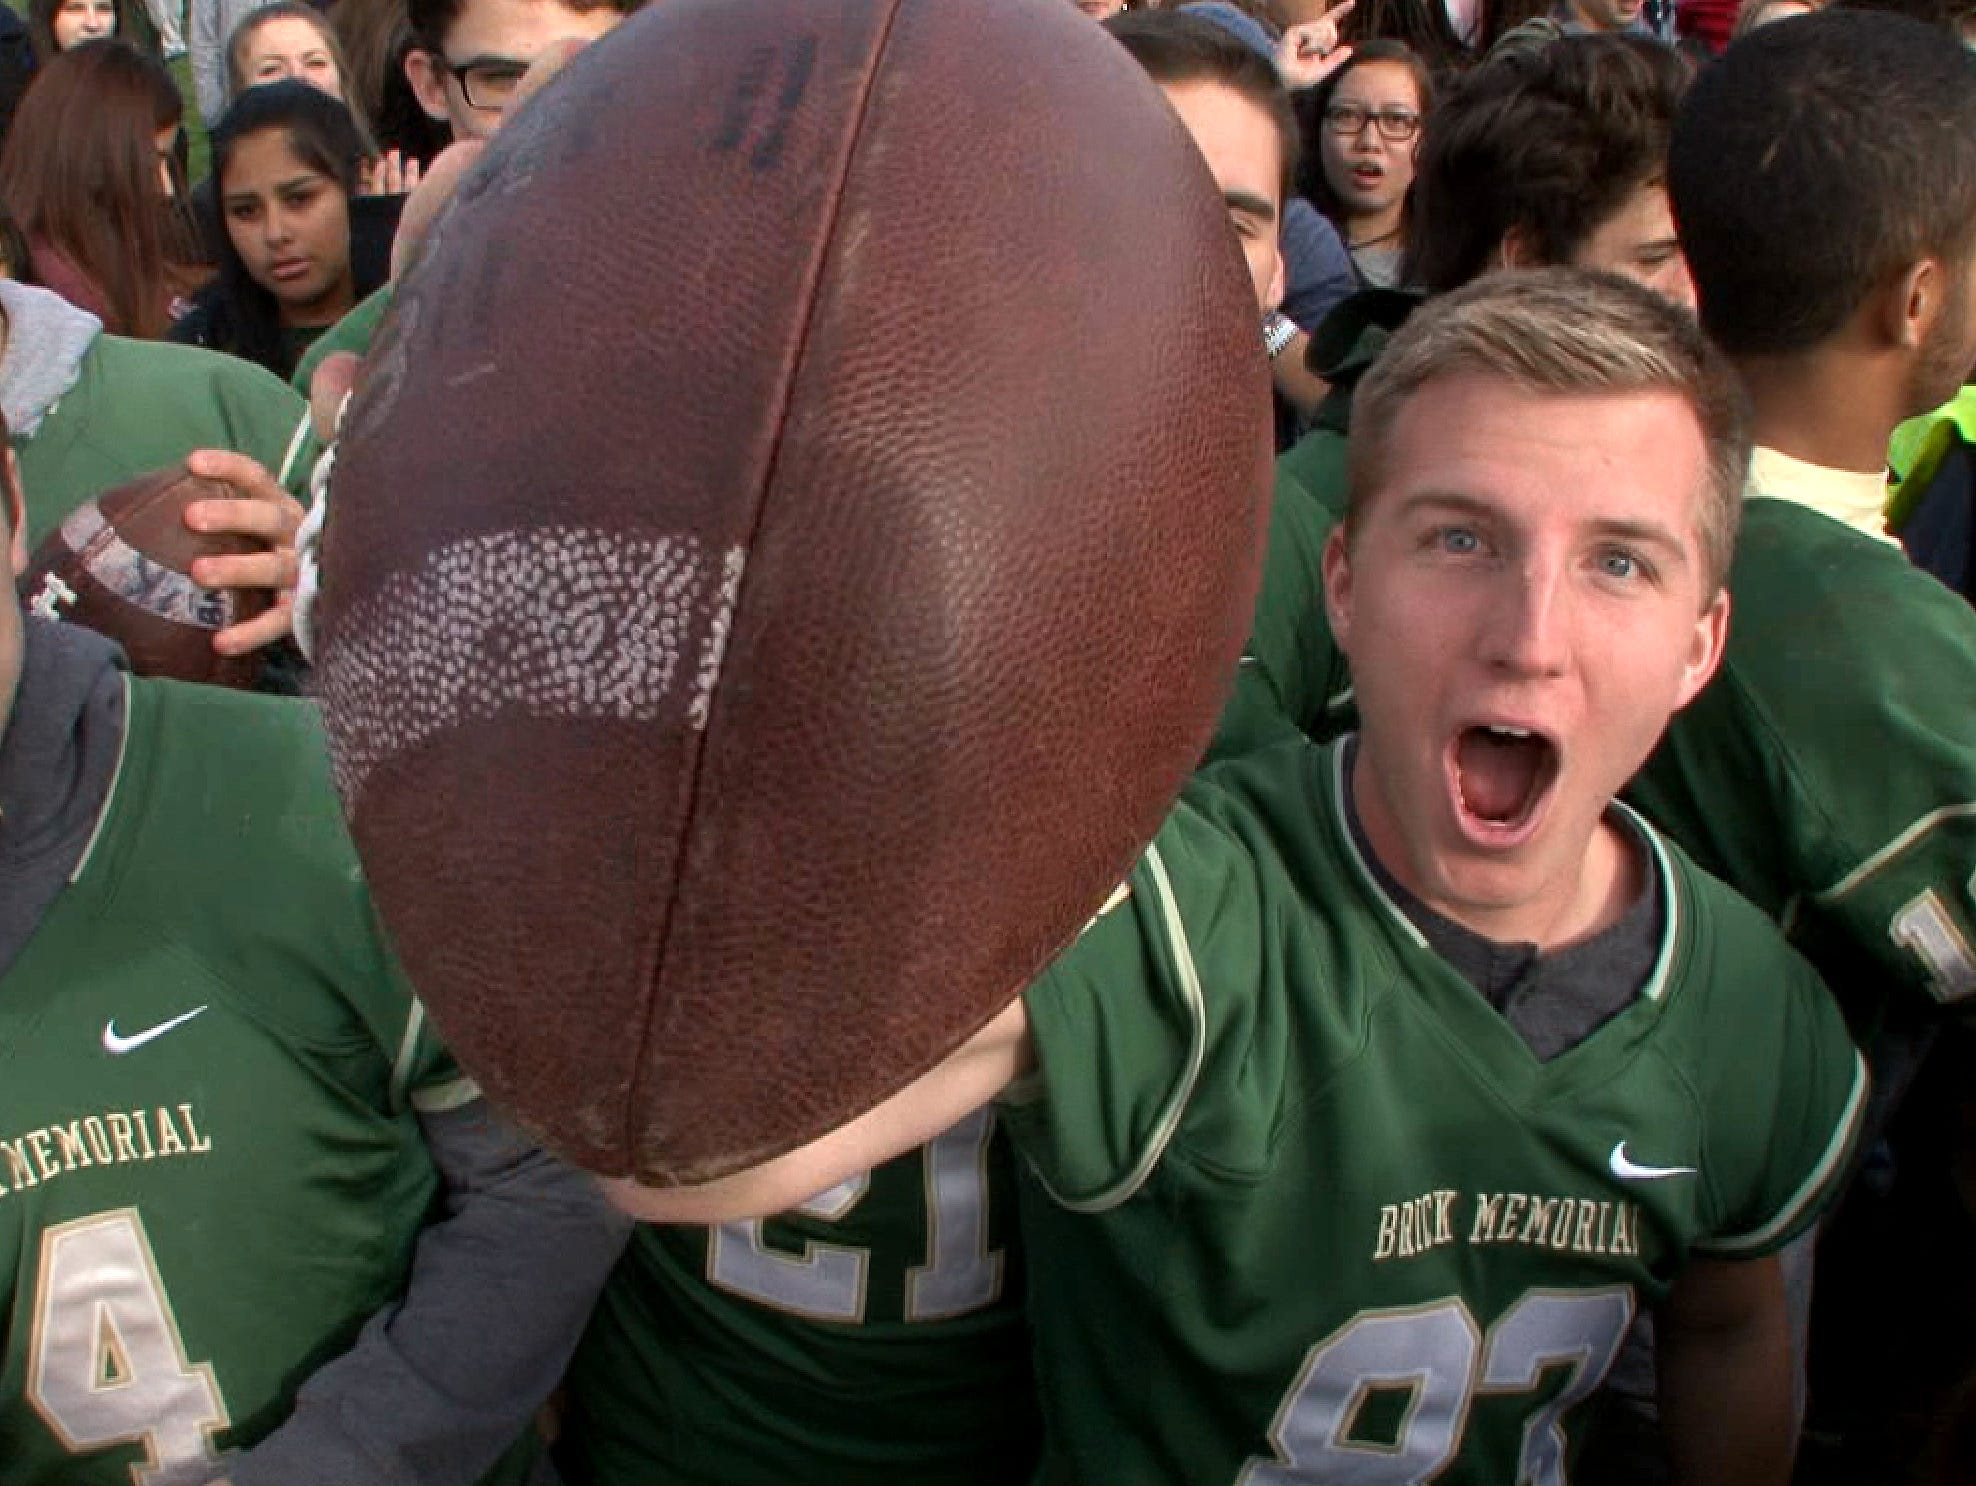 The Red Zone Roadshow visits Brick Memorial High School on Monday, November 30, 2015, in advance of their championship playoff game against Jackson Memorial.